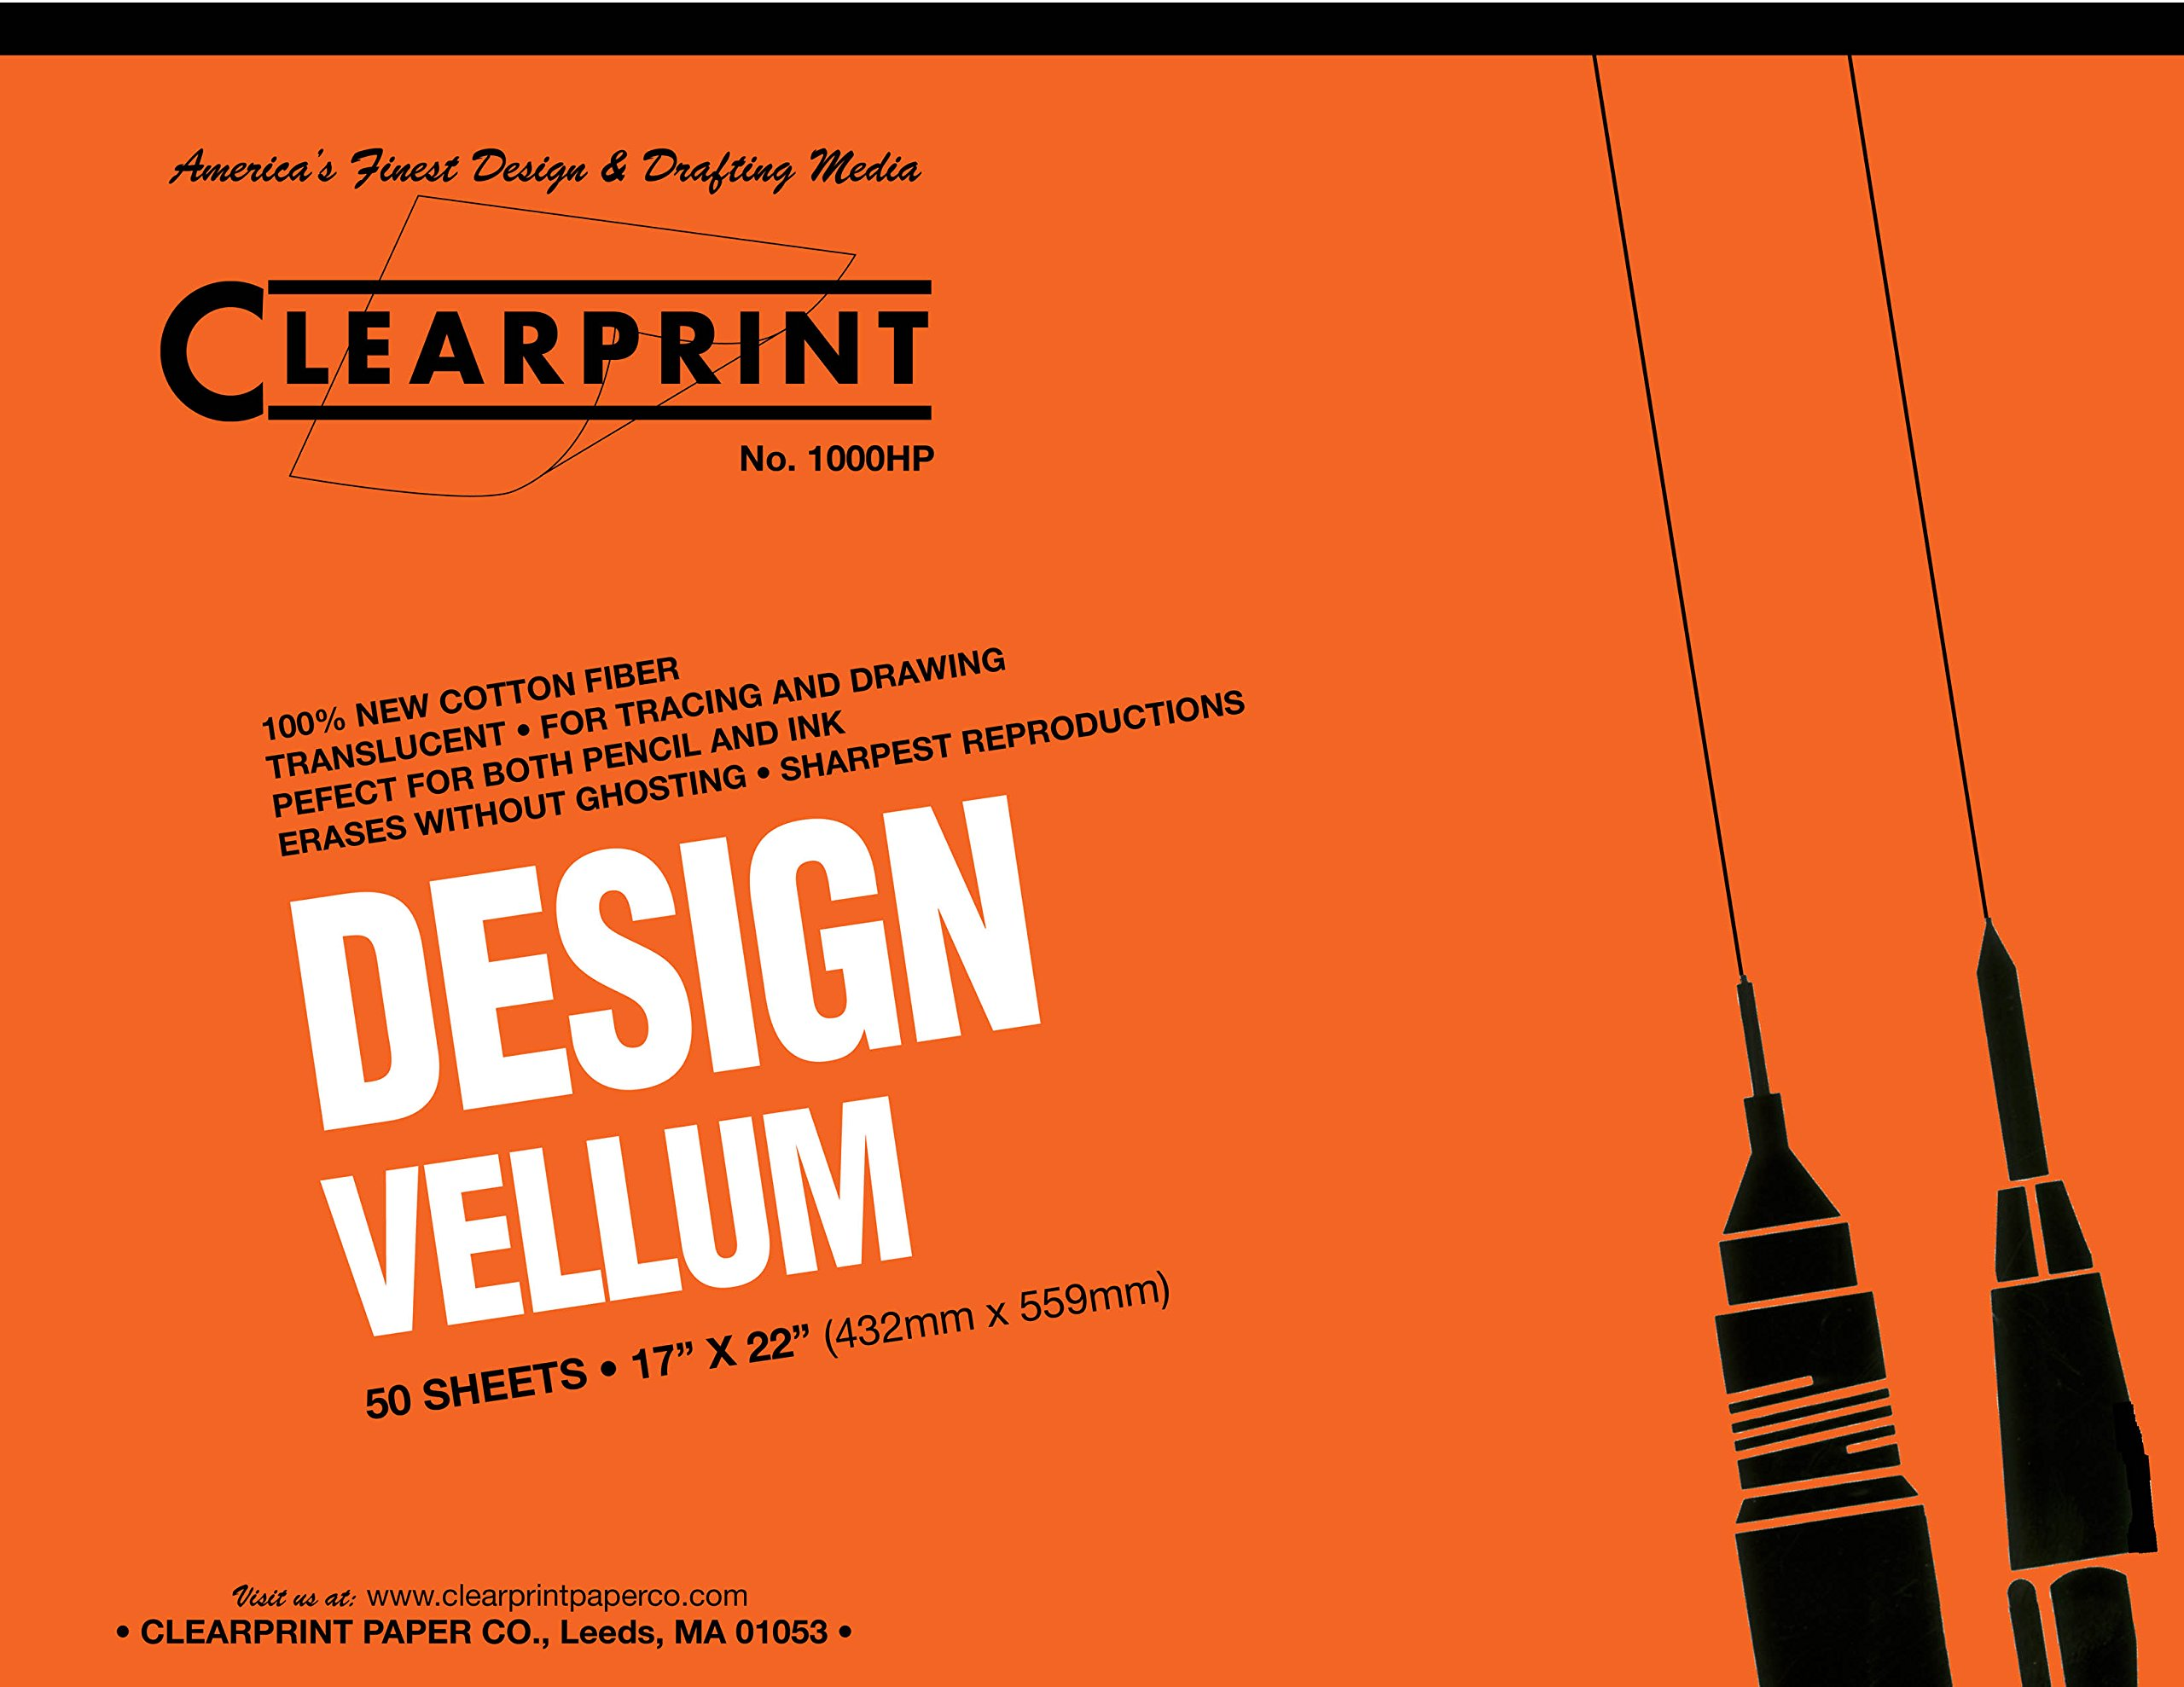 Clearprint 1000H Design Vellum Pad, 16 lb., 100% Cotton, 17 x 22 Inches, 50 Sheets, Translucent White, 1 Each (10001420) by Clearprint